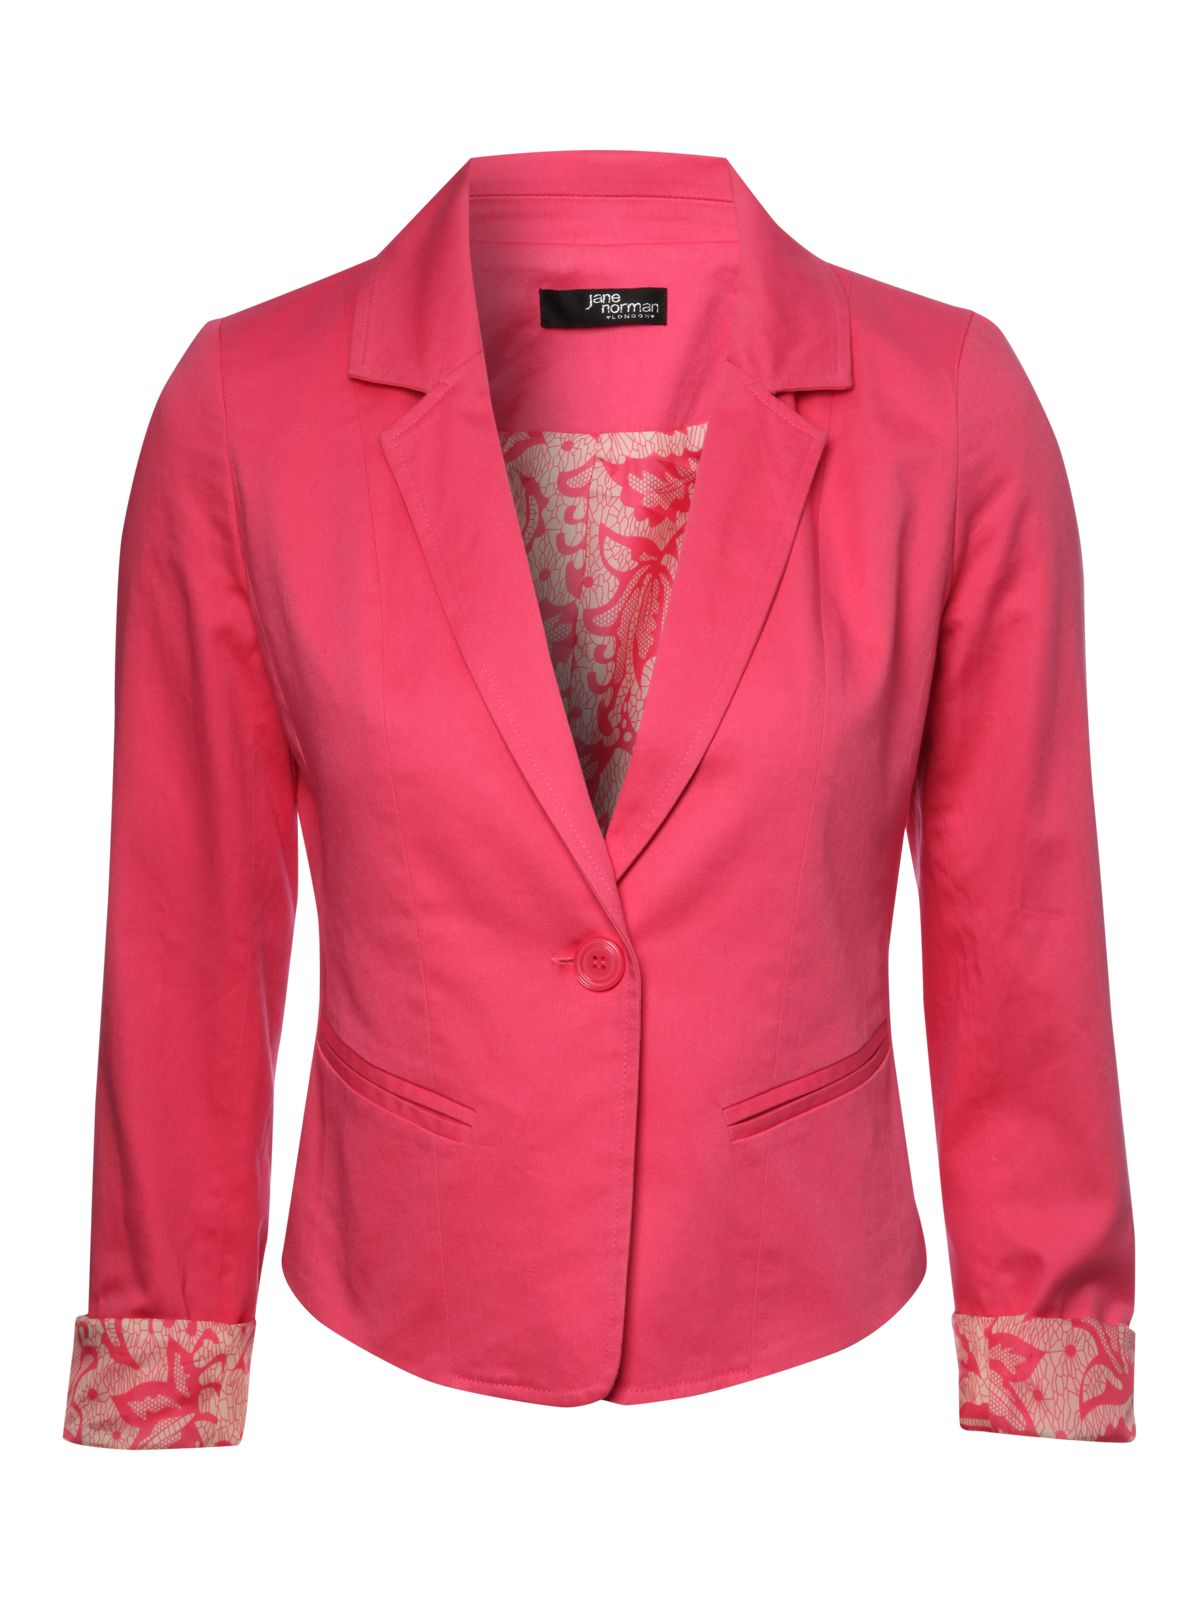 Coloured blazer